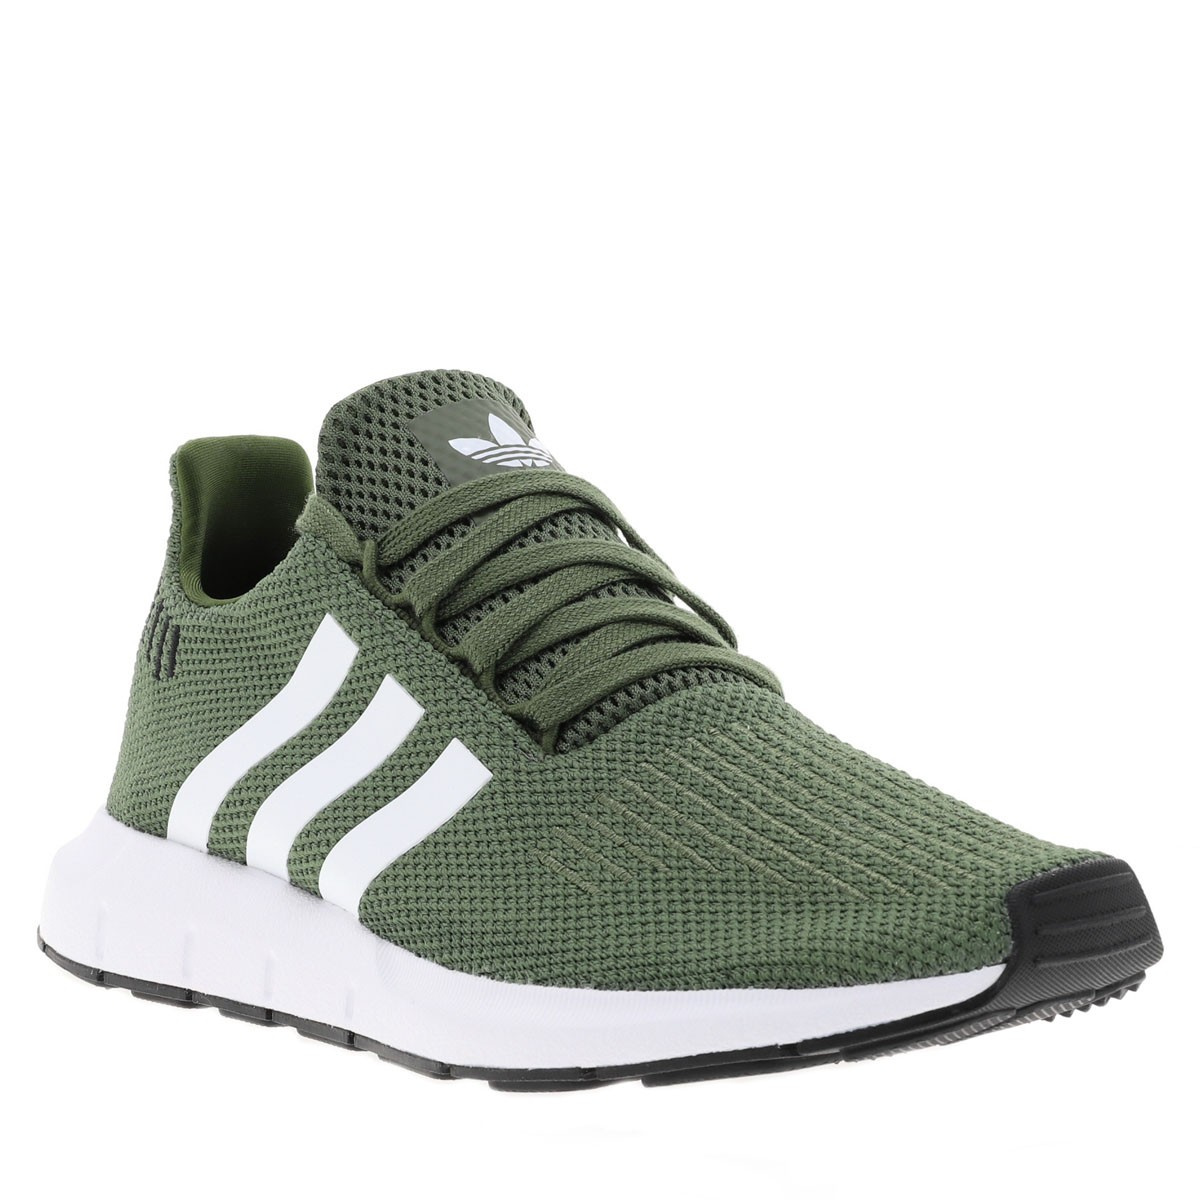 acheter populaire 70291 2a8f3 ADIDAS ORIGINALS Baskets Swift run femme vert